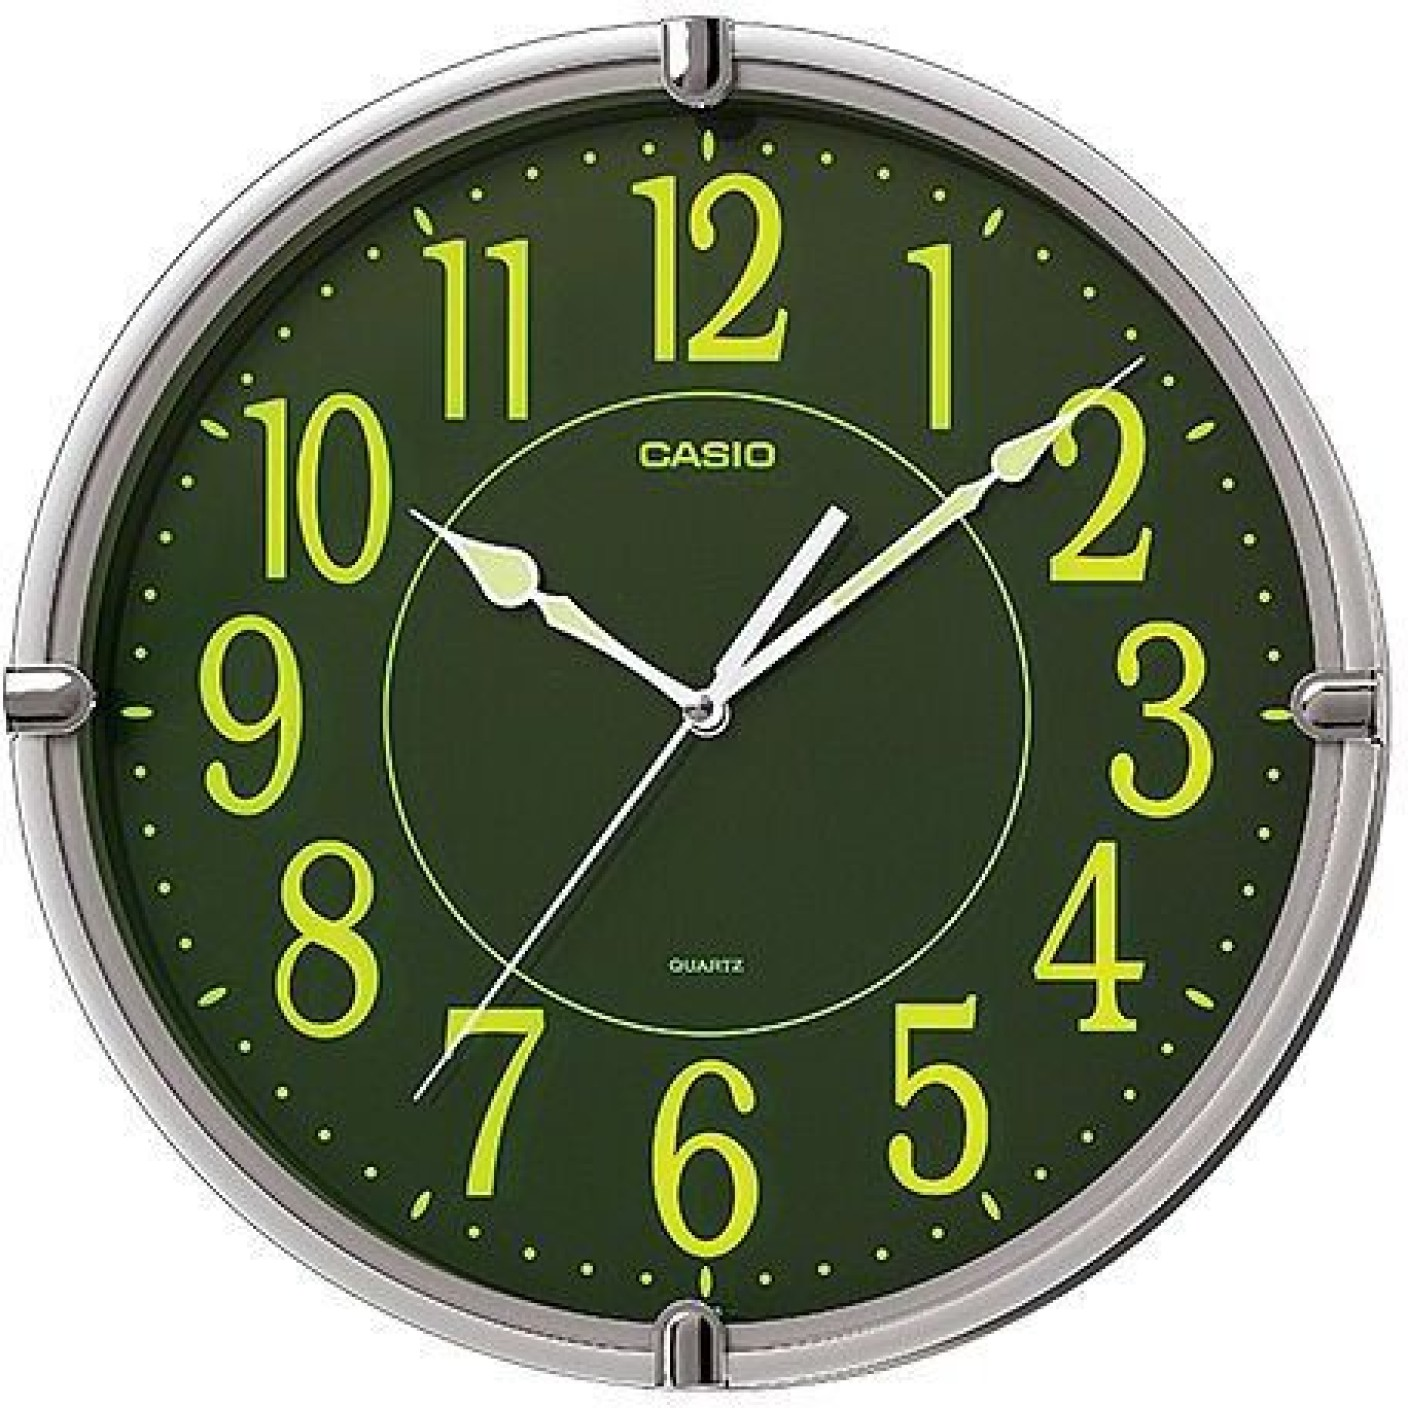 Casio analog wall clock price in india buy casio analog wall casio analog wall clock wishlist amipublicfo Gallery